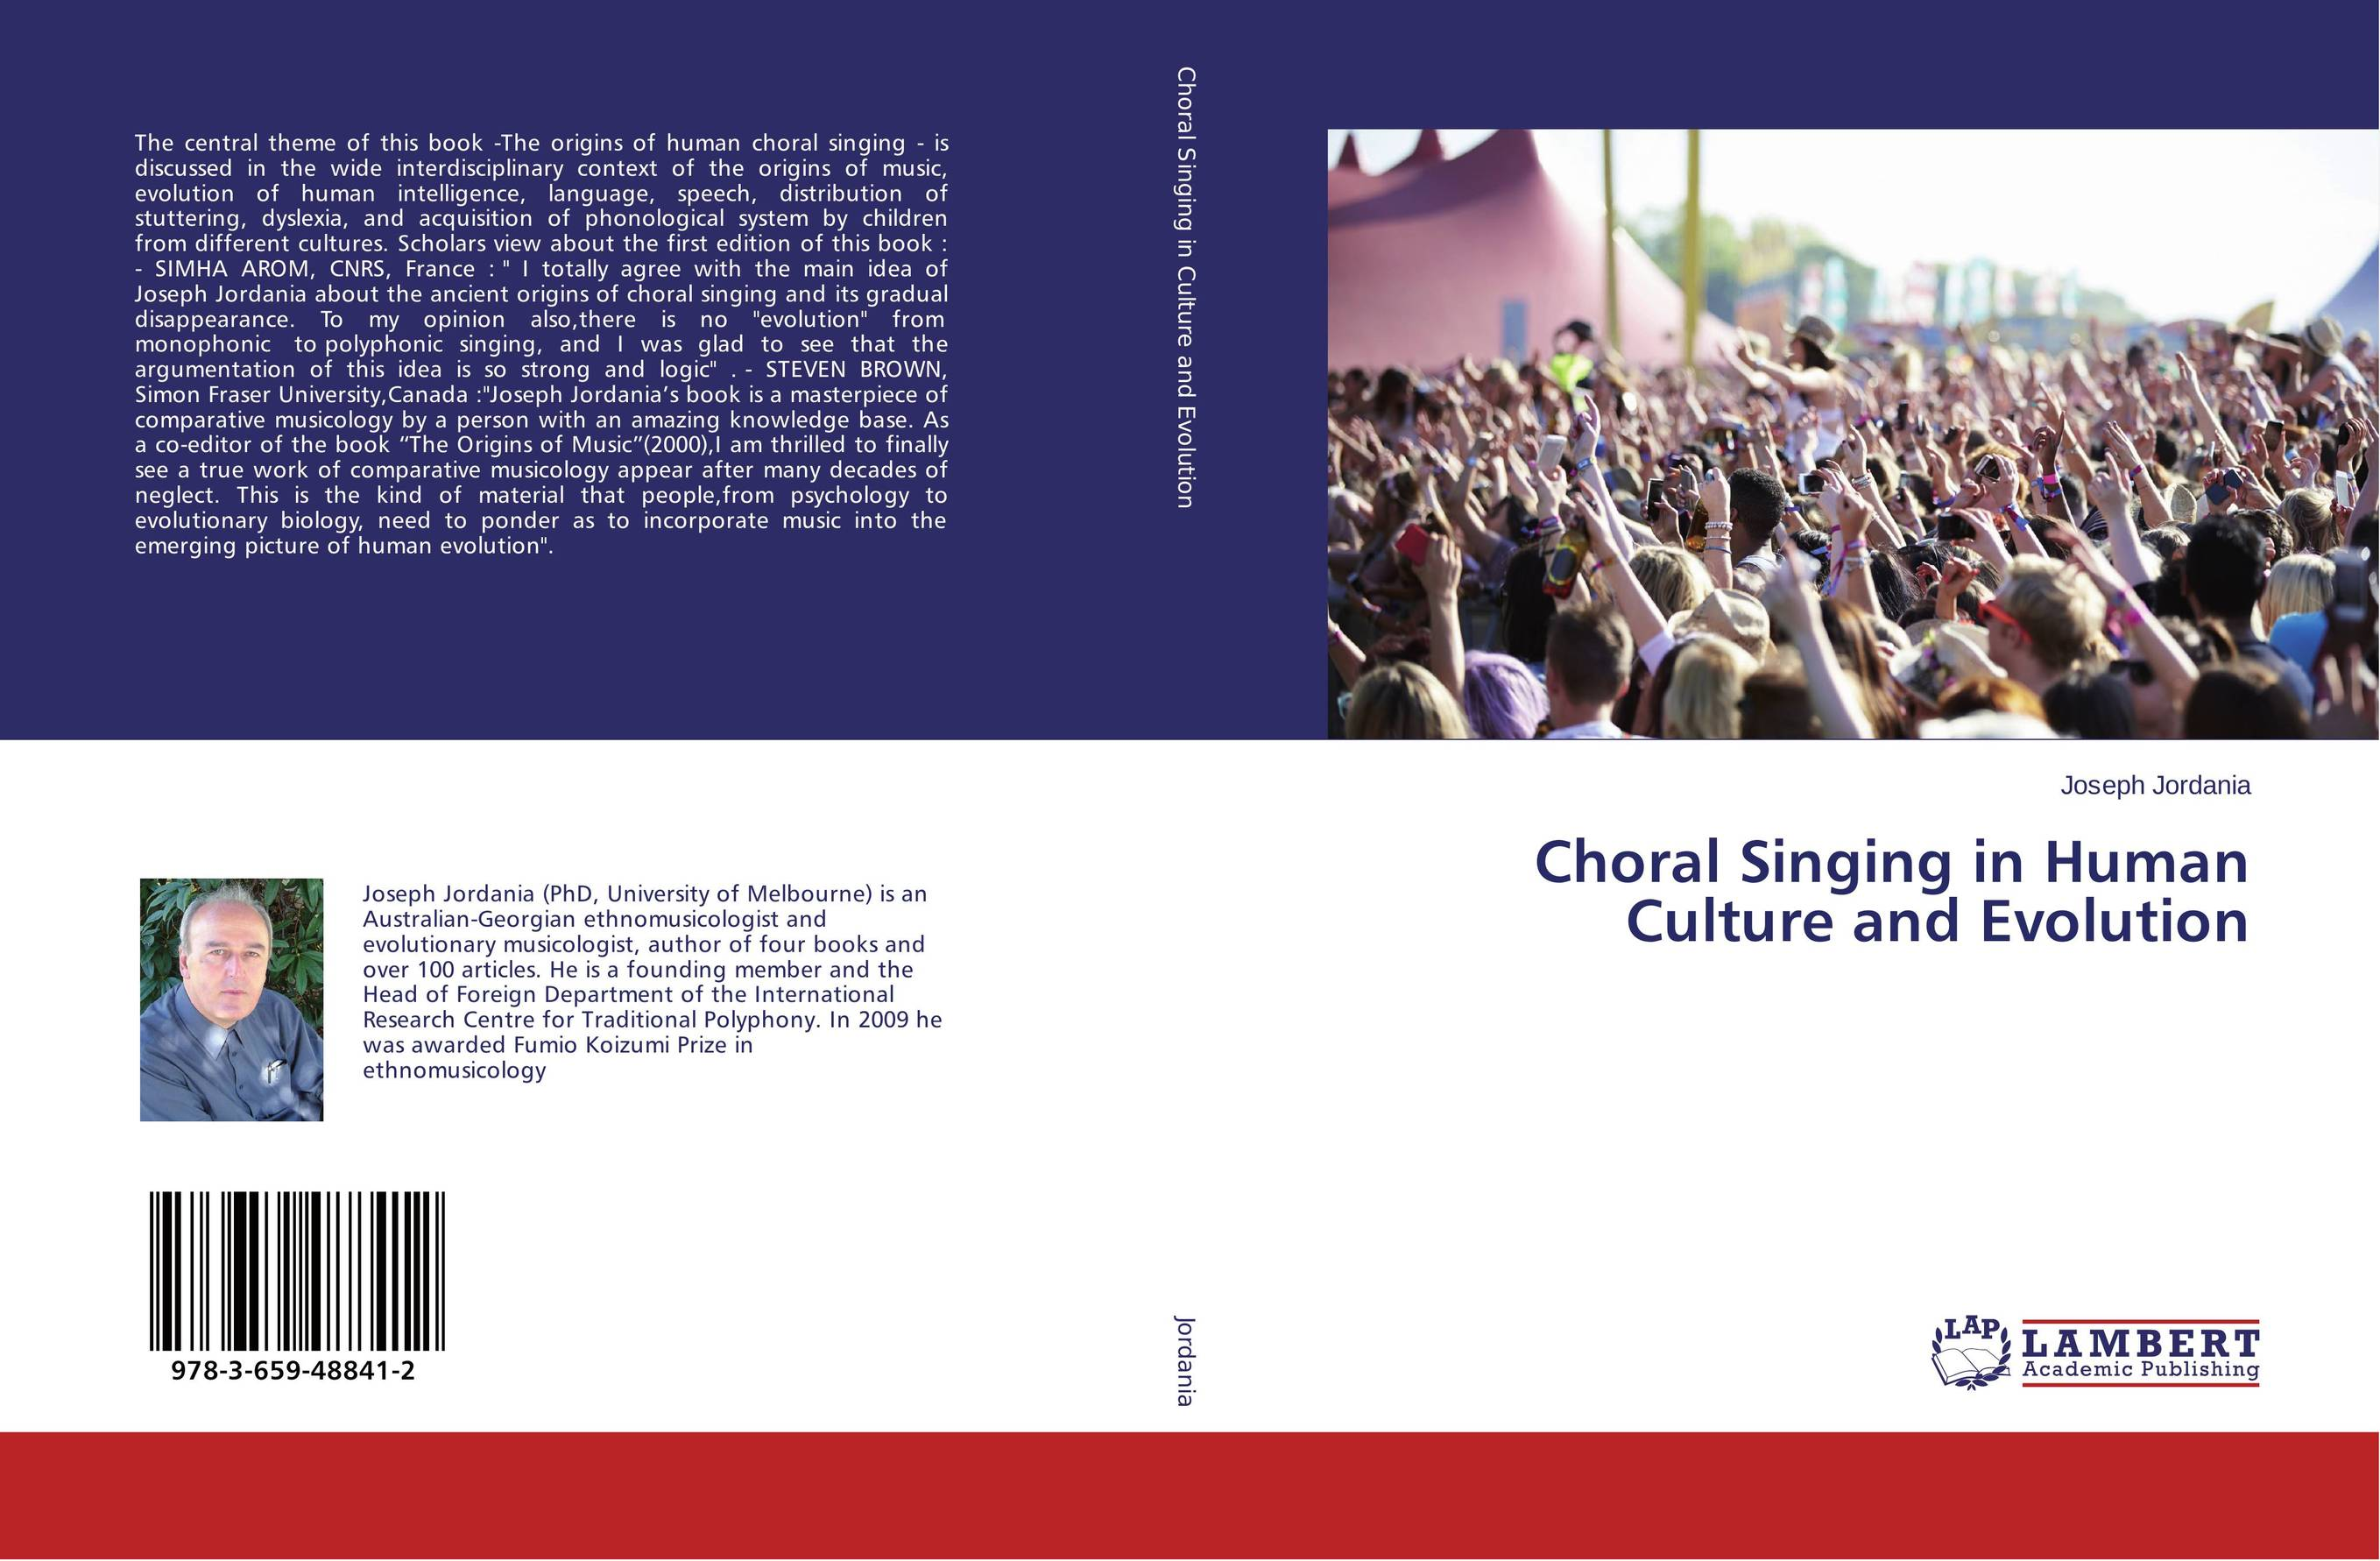 Choral Singing in Human Culture and Evolution choral singing in human culture and evolution